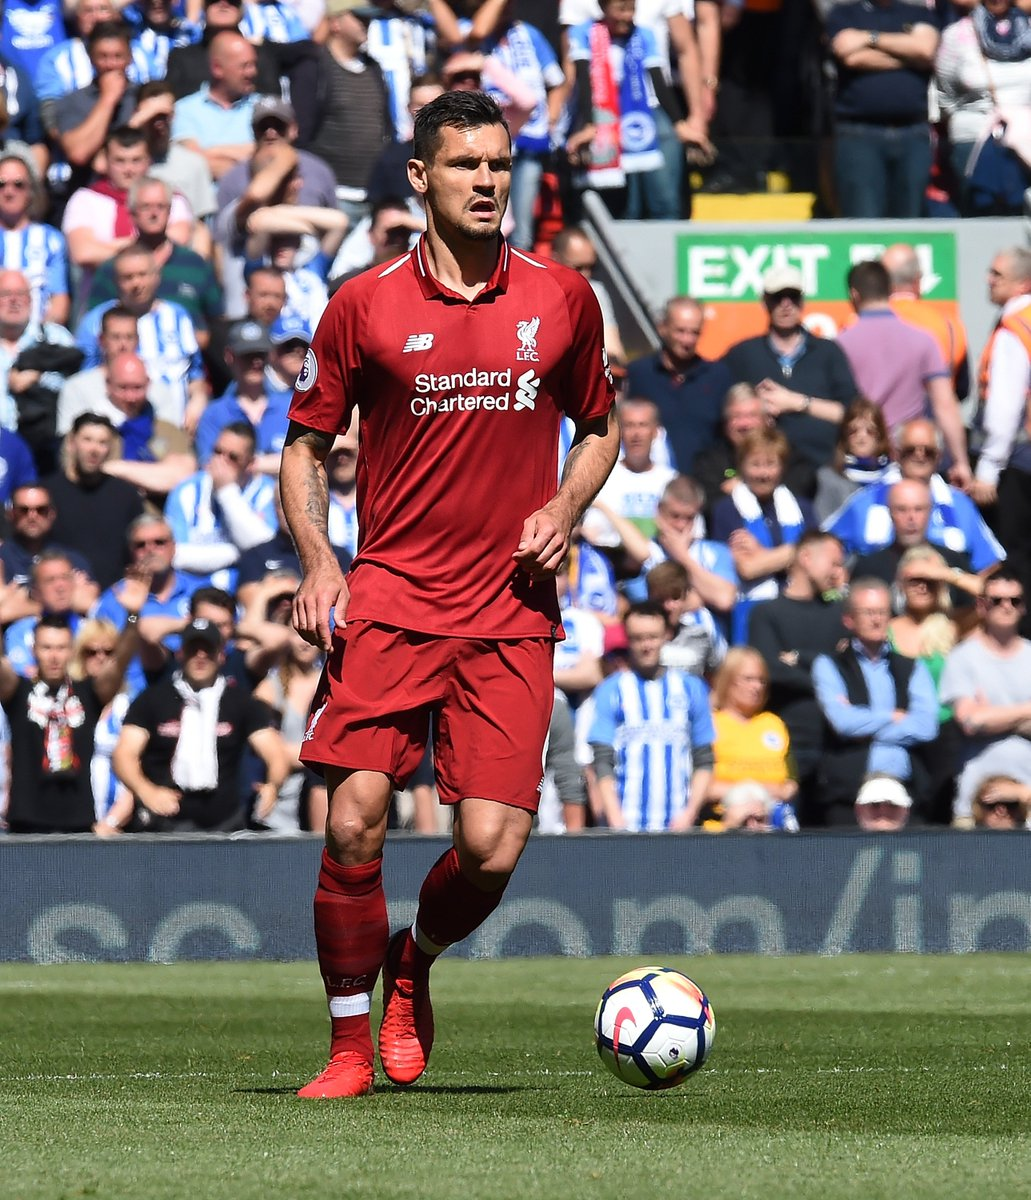 Jürgen Klopp on Lovren: We will be back in our intense period. With seven games in 23 days. It feels like weve got 500 games! When you have a lot of players you can make decisions, good decisions. Luxury problem to have.